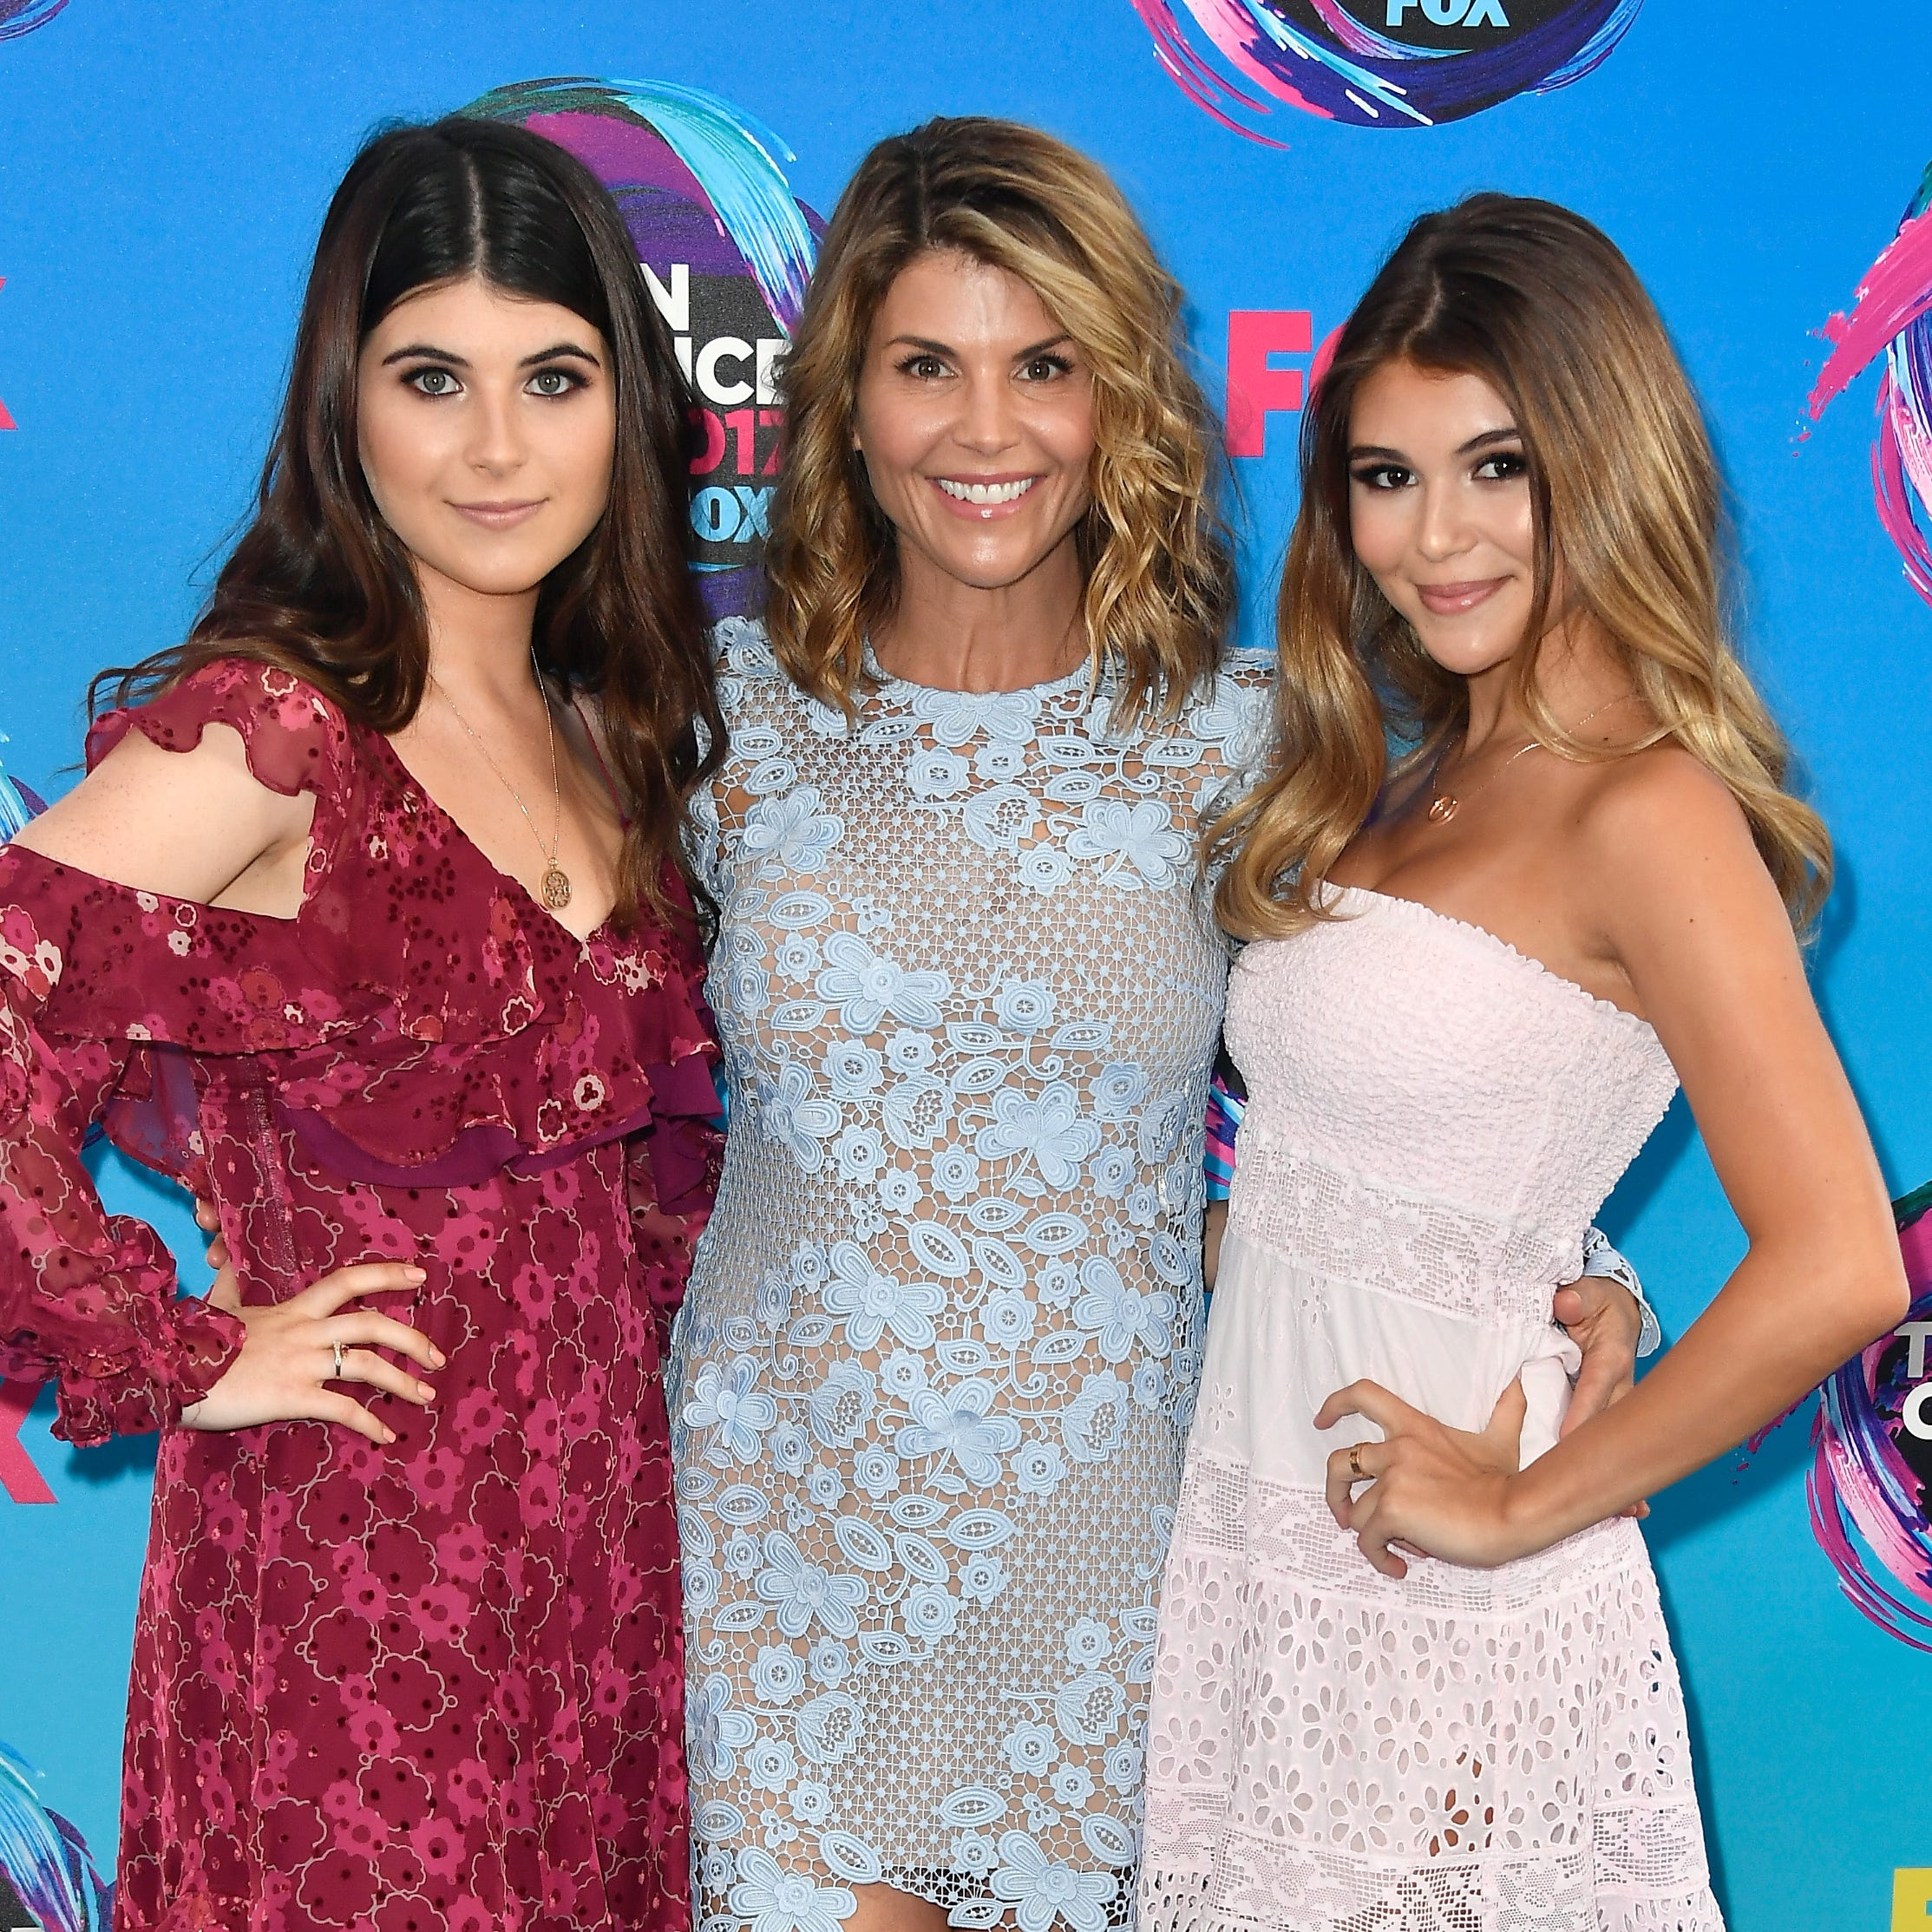 College admissions scandal: Graduate of Olivia Jade's L.A. prep school hits back